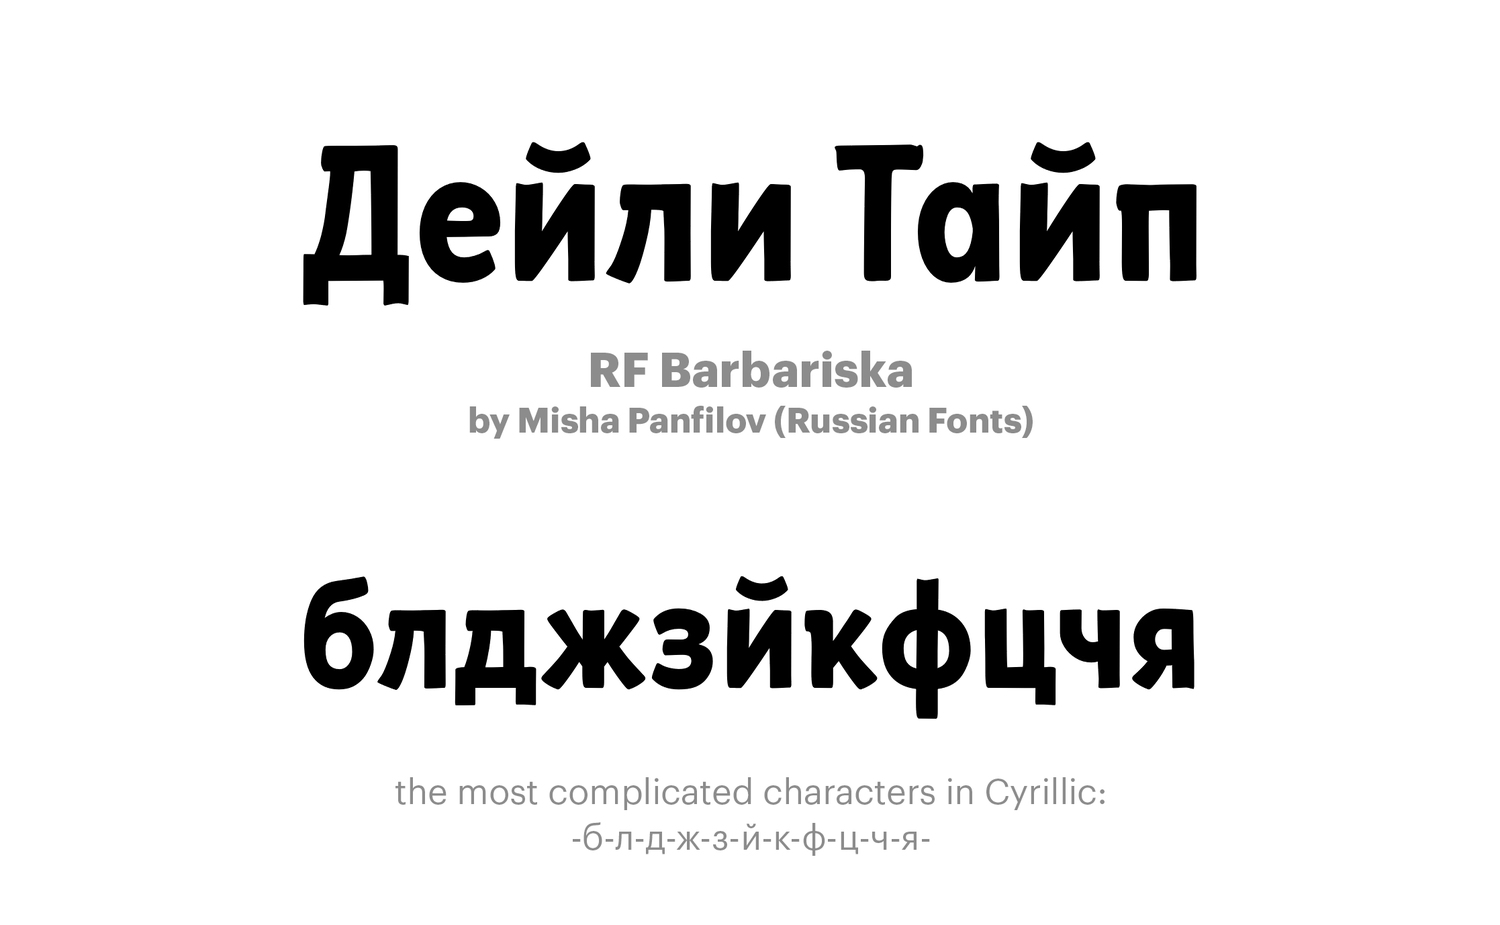 RF-Barbariska-by-Misha-Panfilov-(Russian-Fonts)